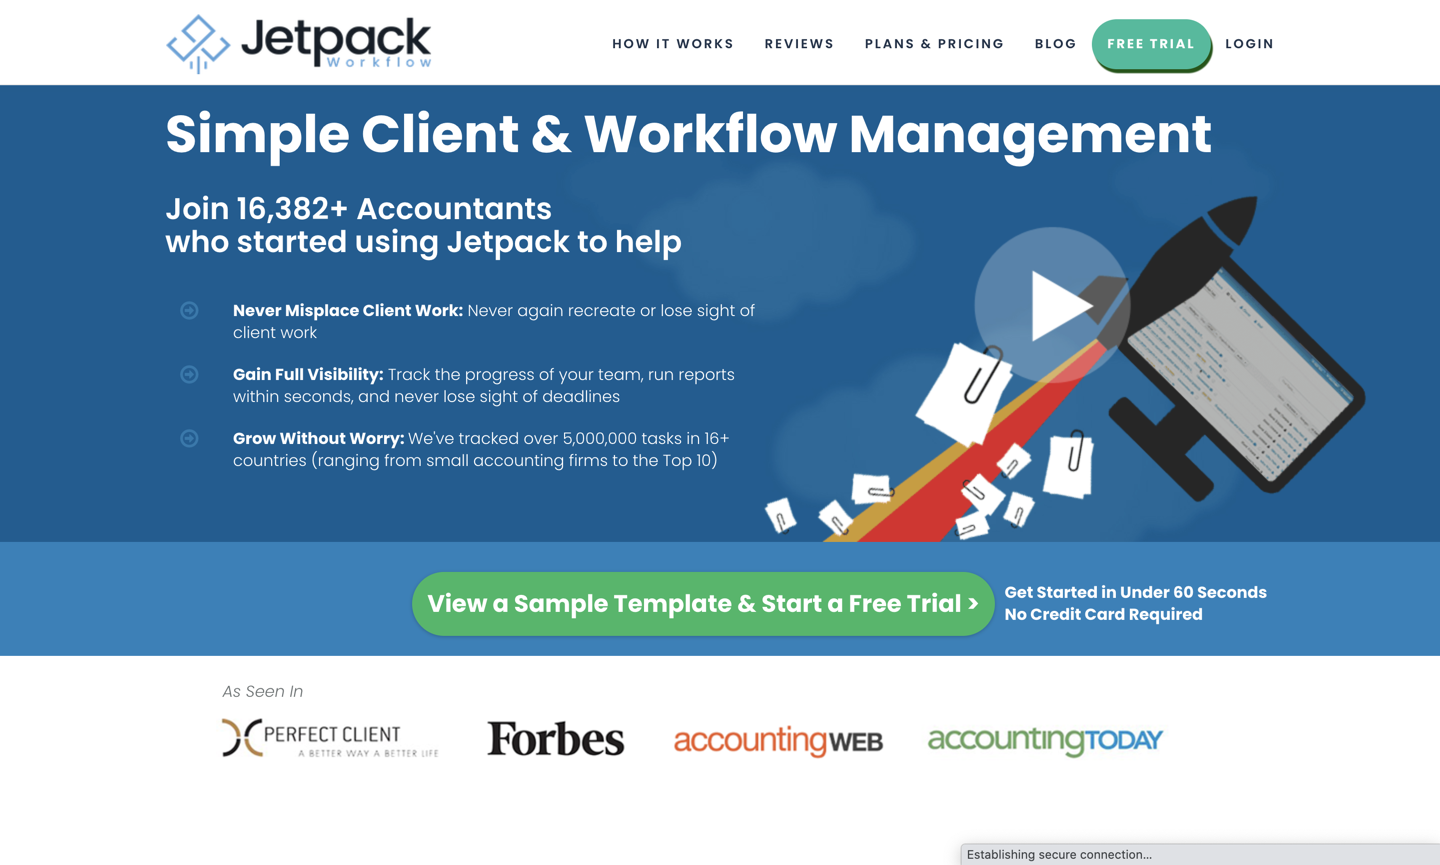 Jetpack Workflow home page